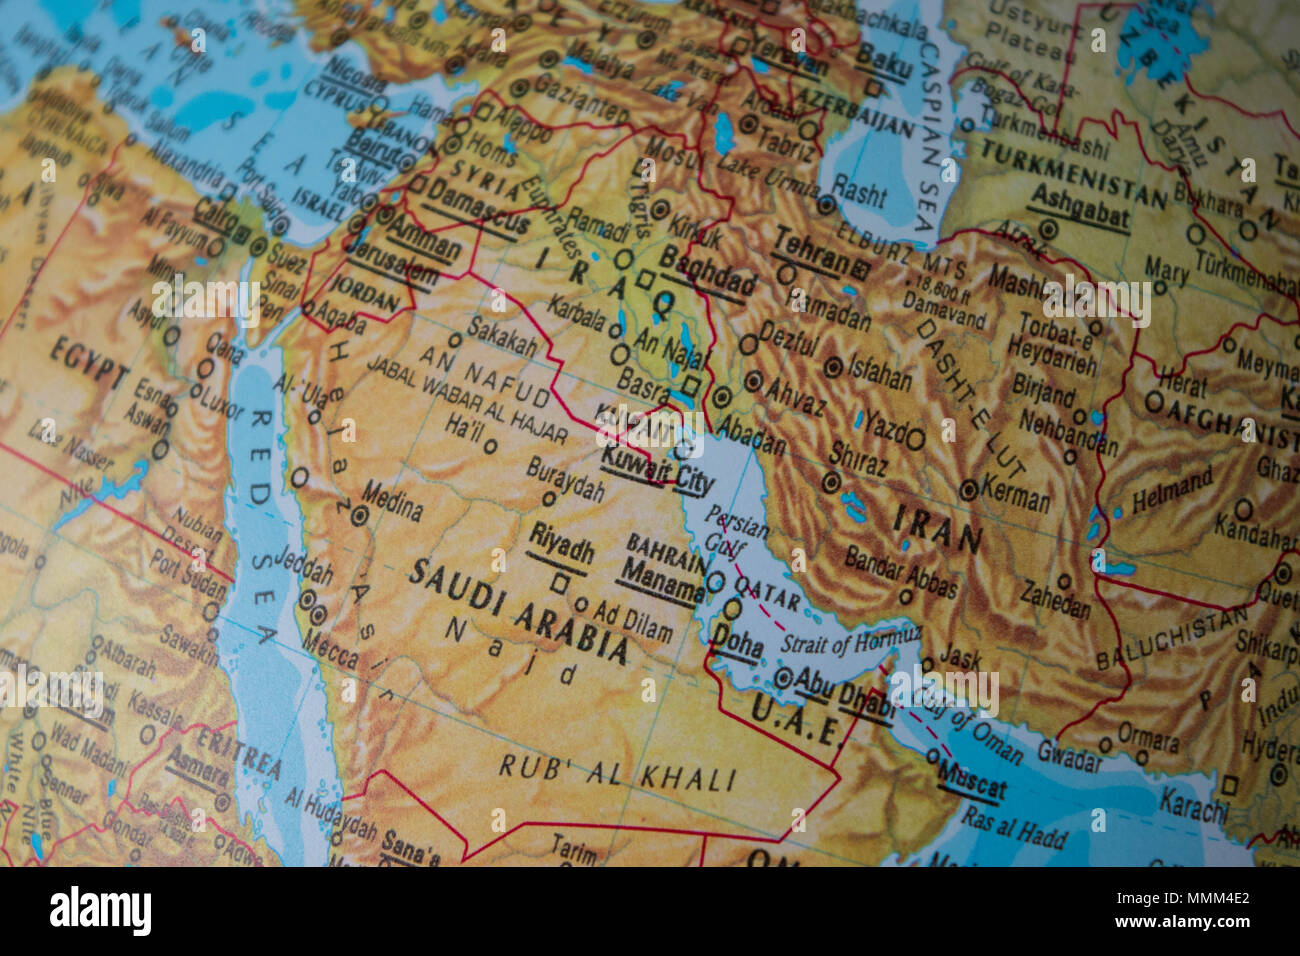 Middle East Map Stock Photos & Middle East Map Stock Images